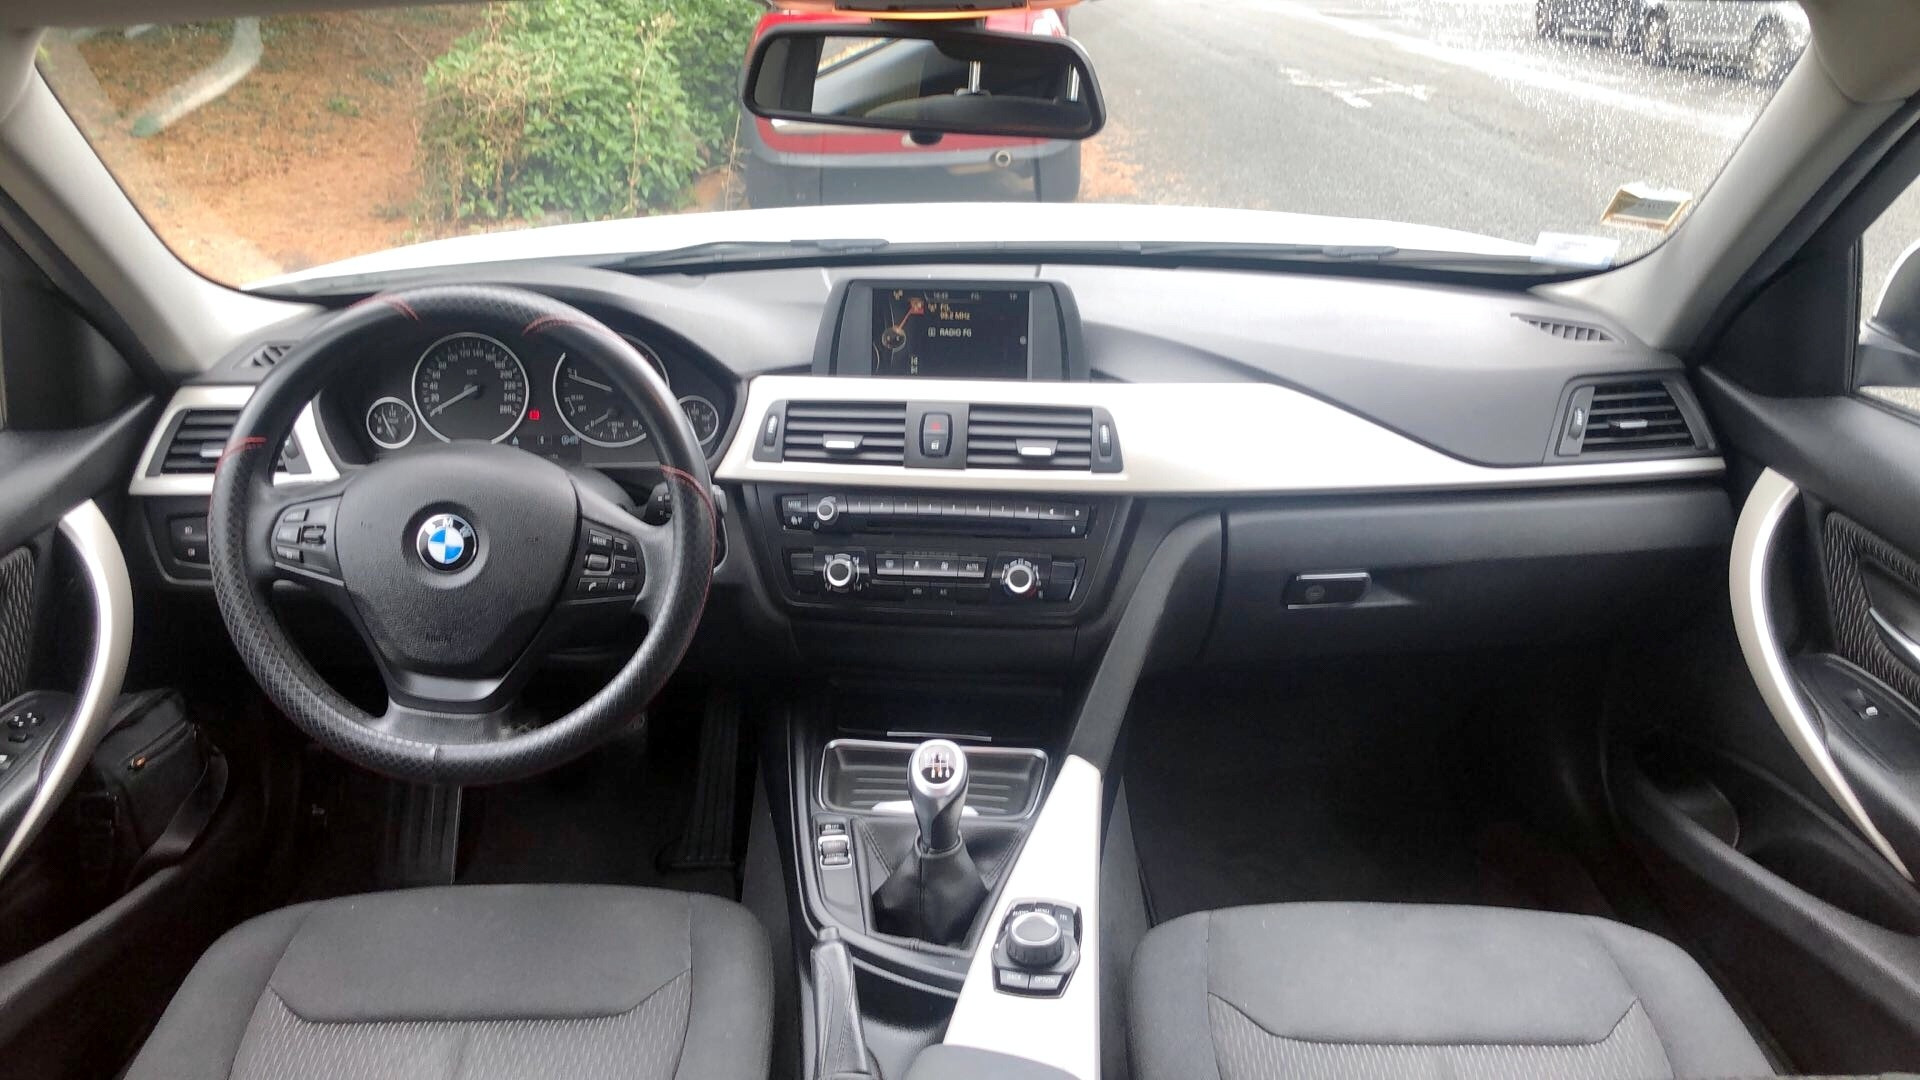 Bmw Serie 3 F30 D Occasion 316d 116 Ch 114 G Lounge Start Edition Neuilly Sur Marne Carizy